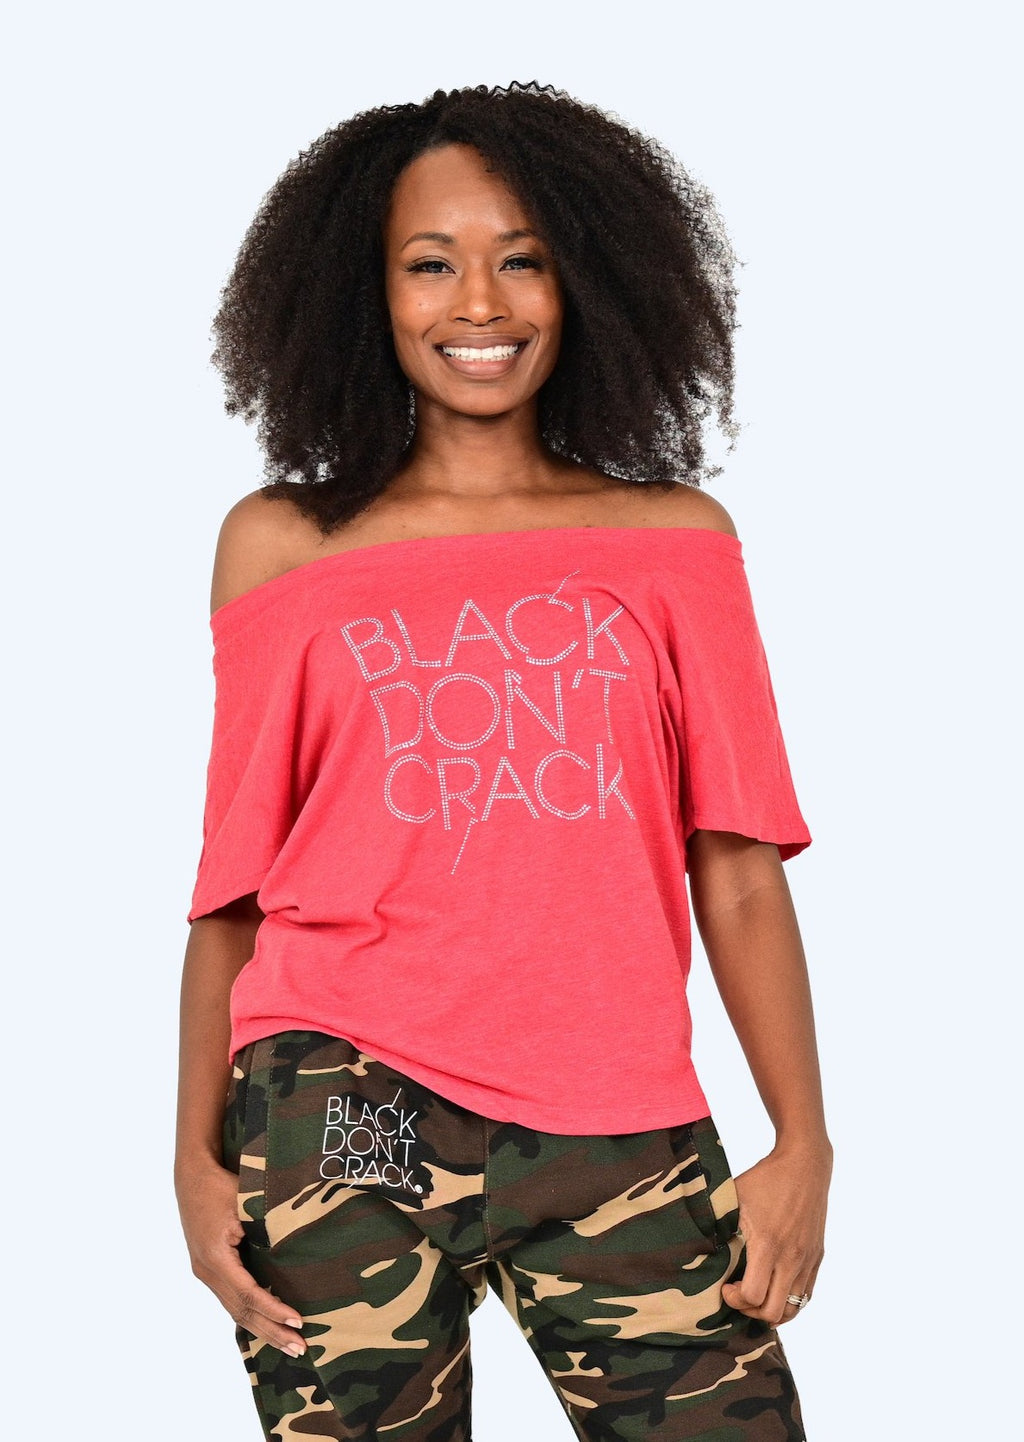 Black Don't Crack Vintage Red Dolman Ladies Off The Shoulder Top